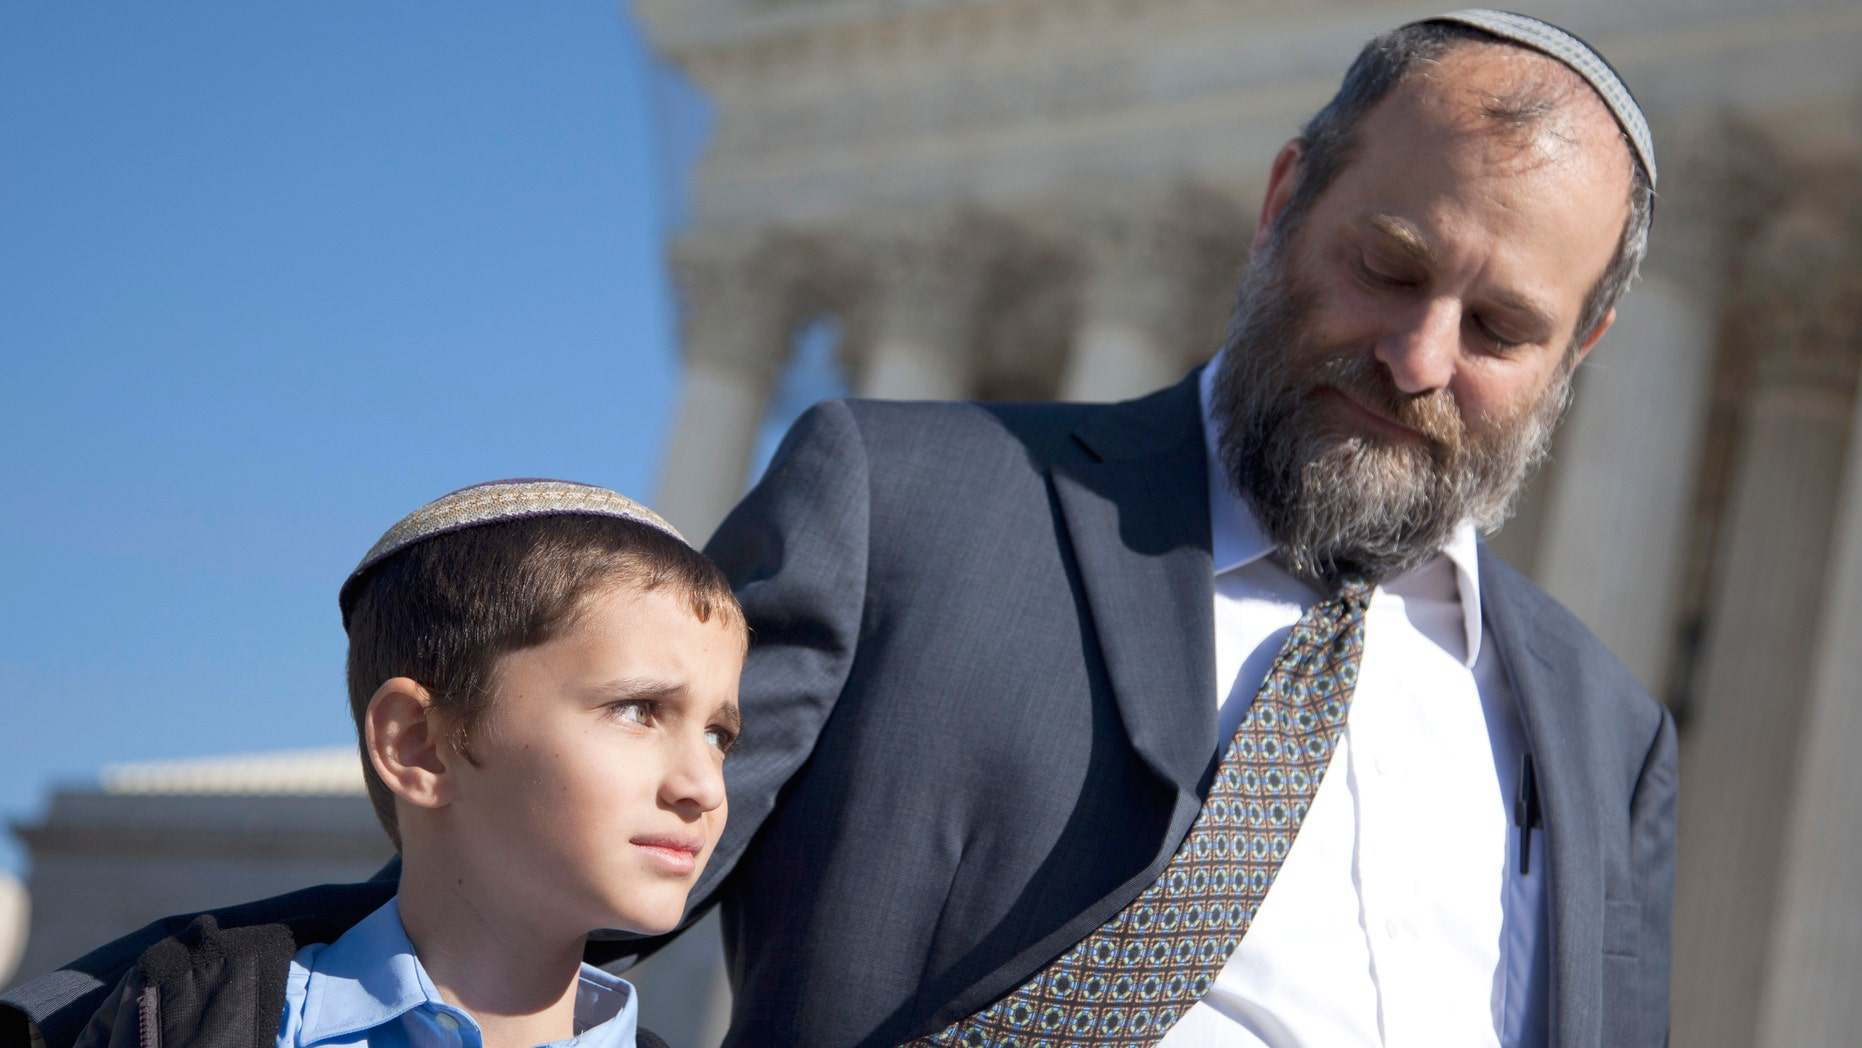 Nov. 7, 2011: Ari Zivotofsky, right, stands with his nine-year-old son, Menachem, outside the Supreme Court in Washington.